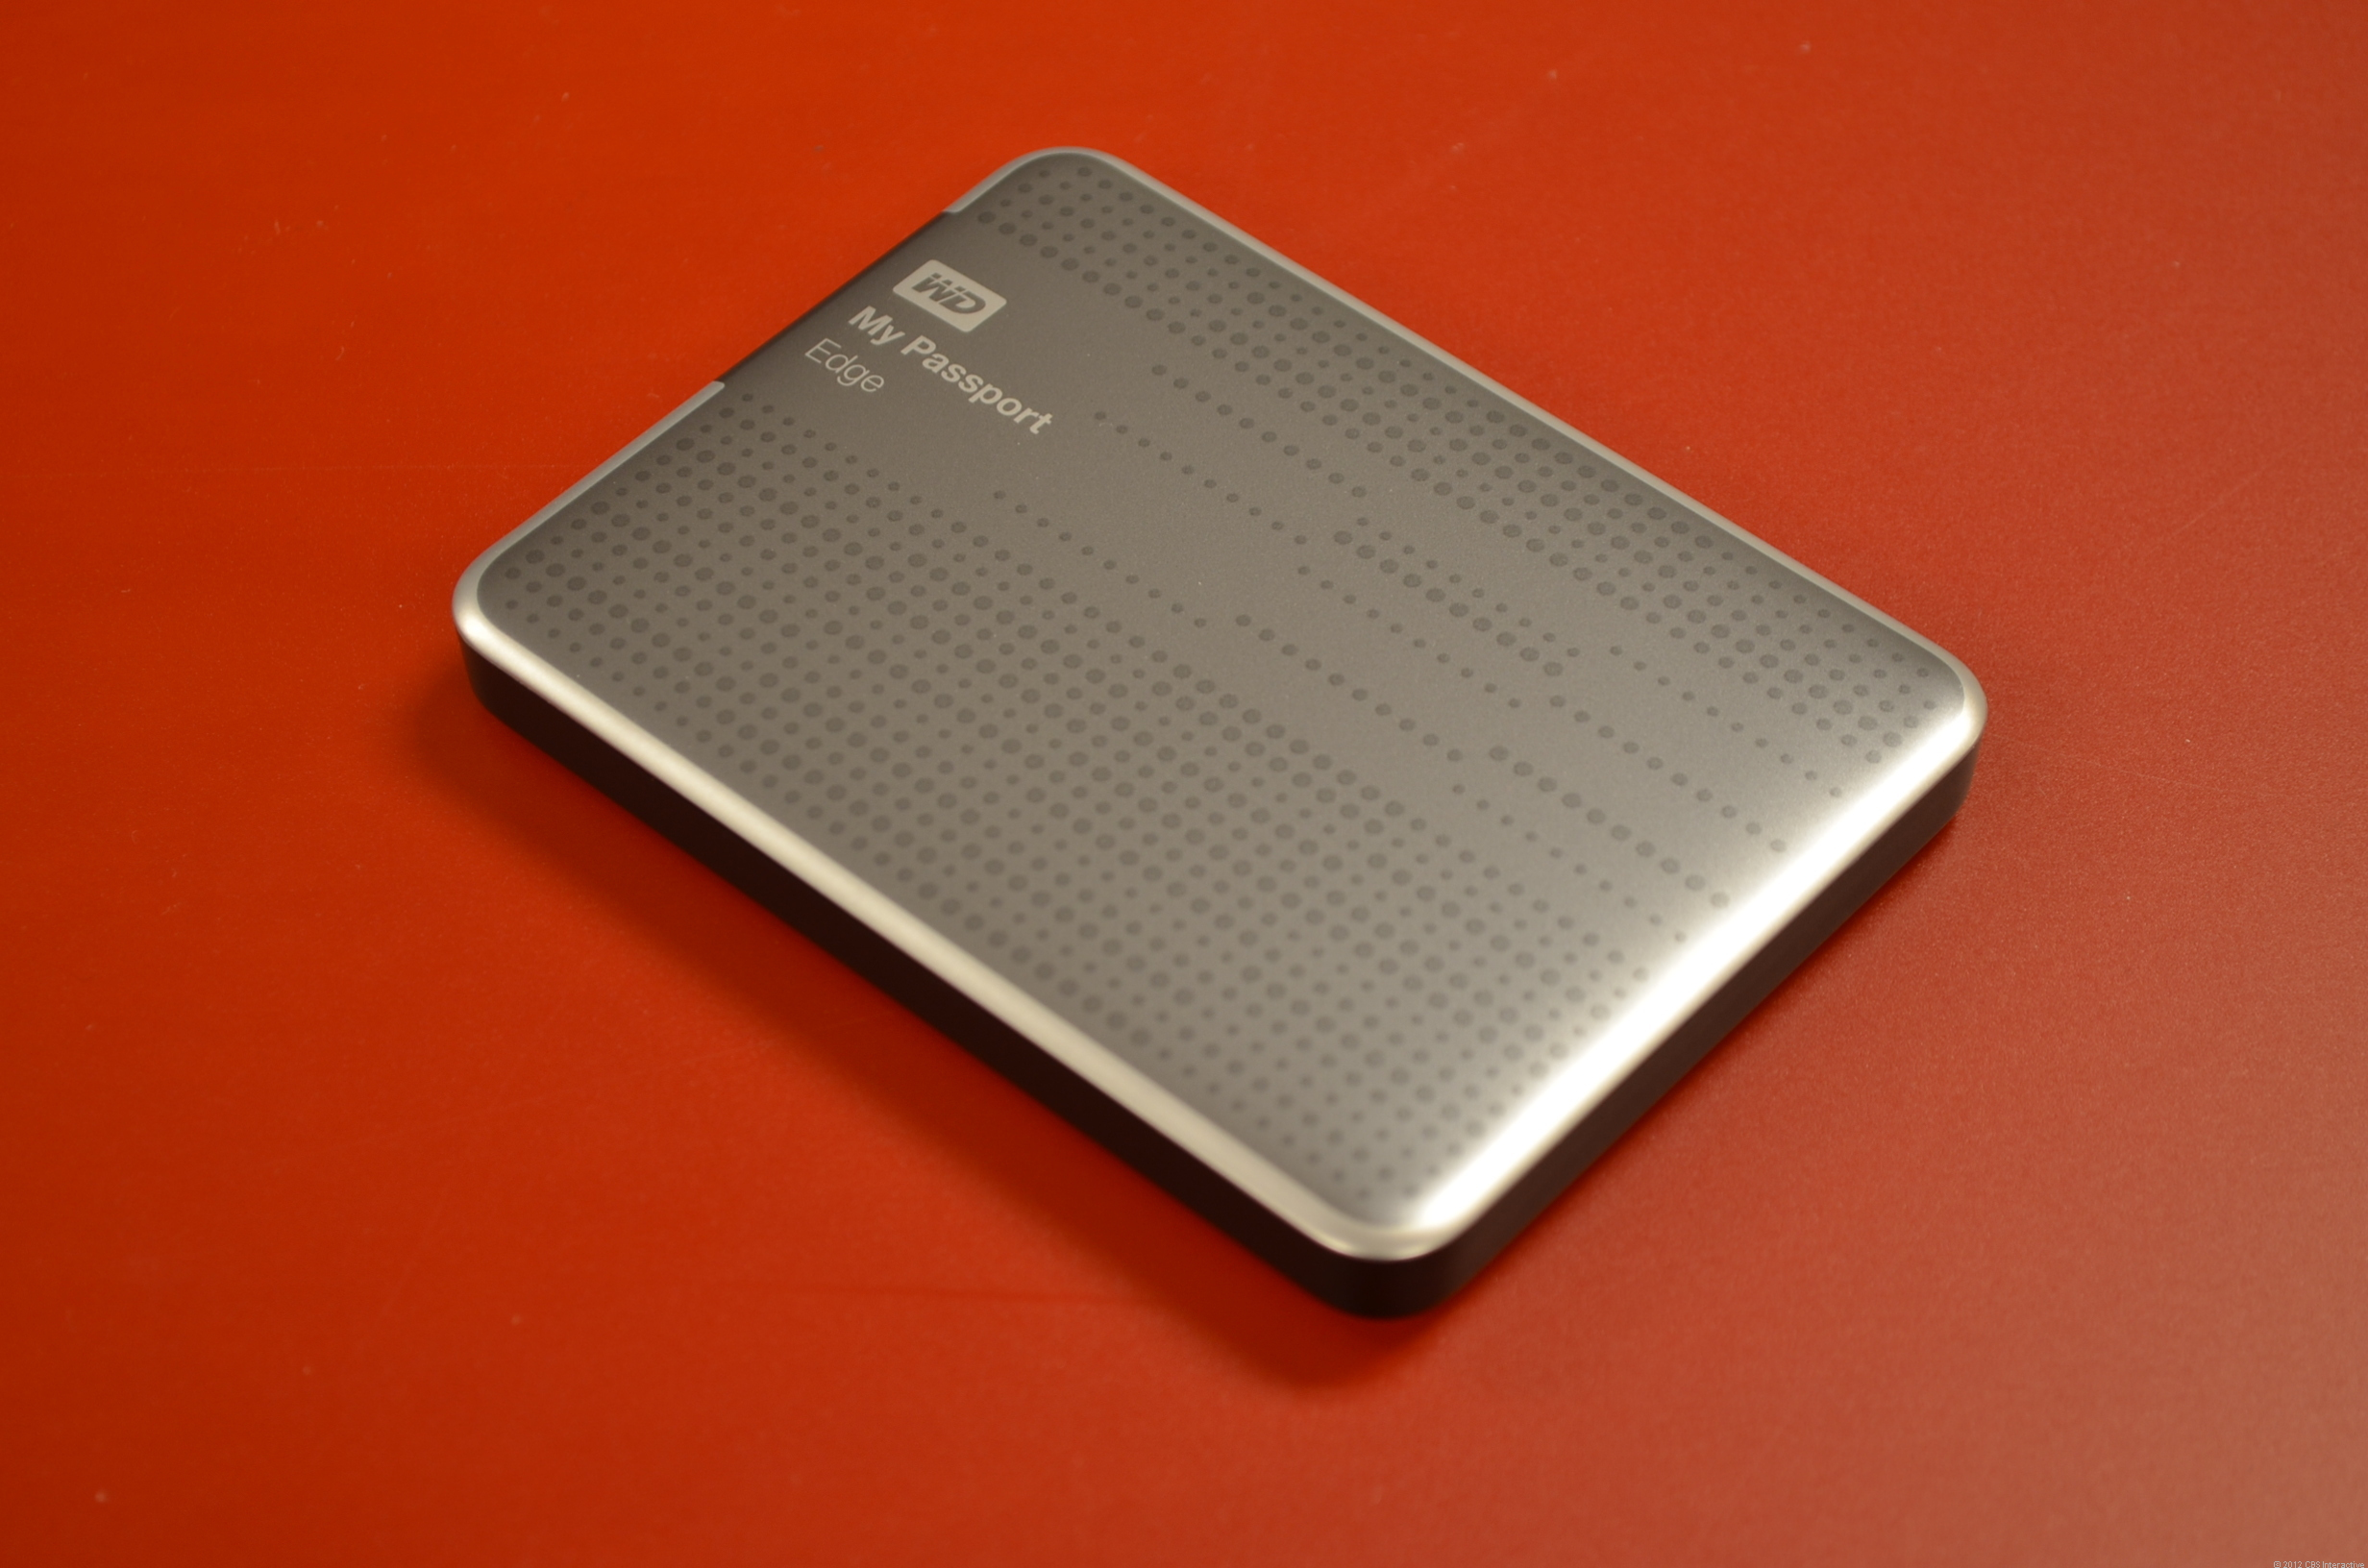 WD My Passport Edge -- best storage devices